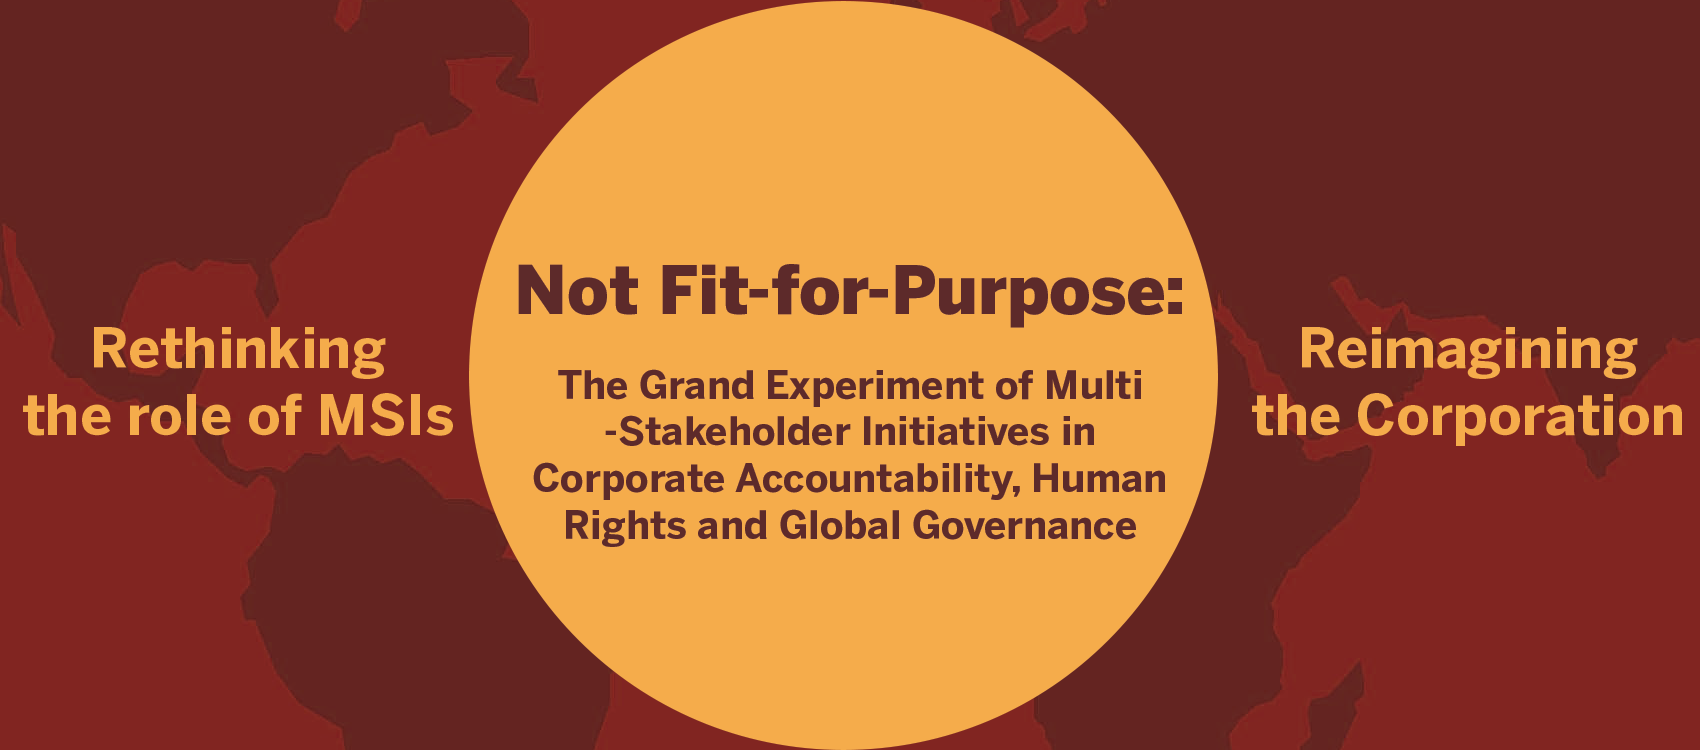 Not Fit-for-Purpose: The Grand Experiment of Multi-Stakeholder Initiatives in Corporate Accountability, Human Rights and Global Governance